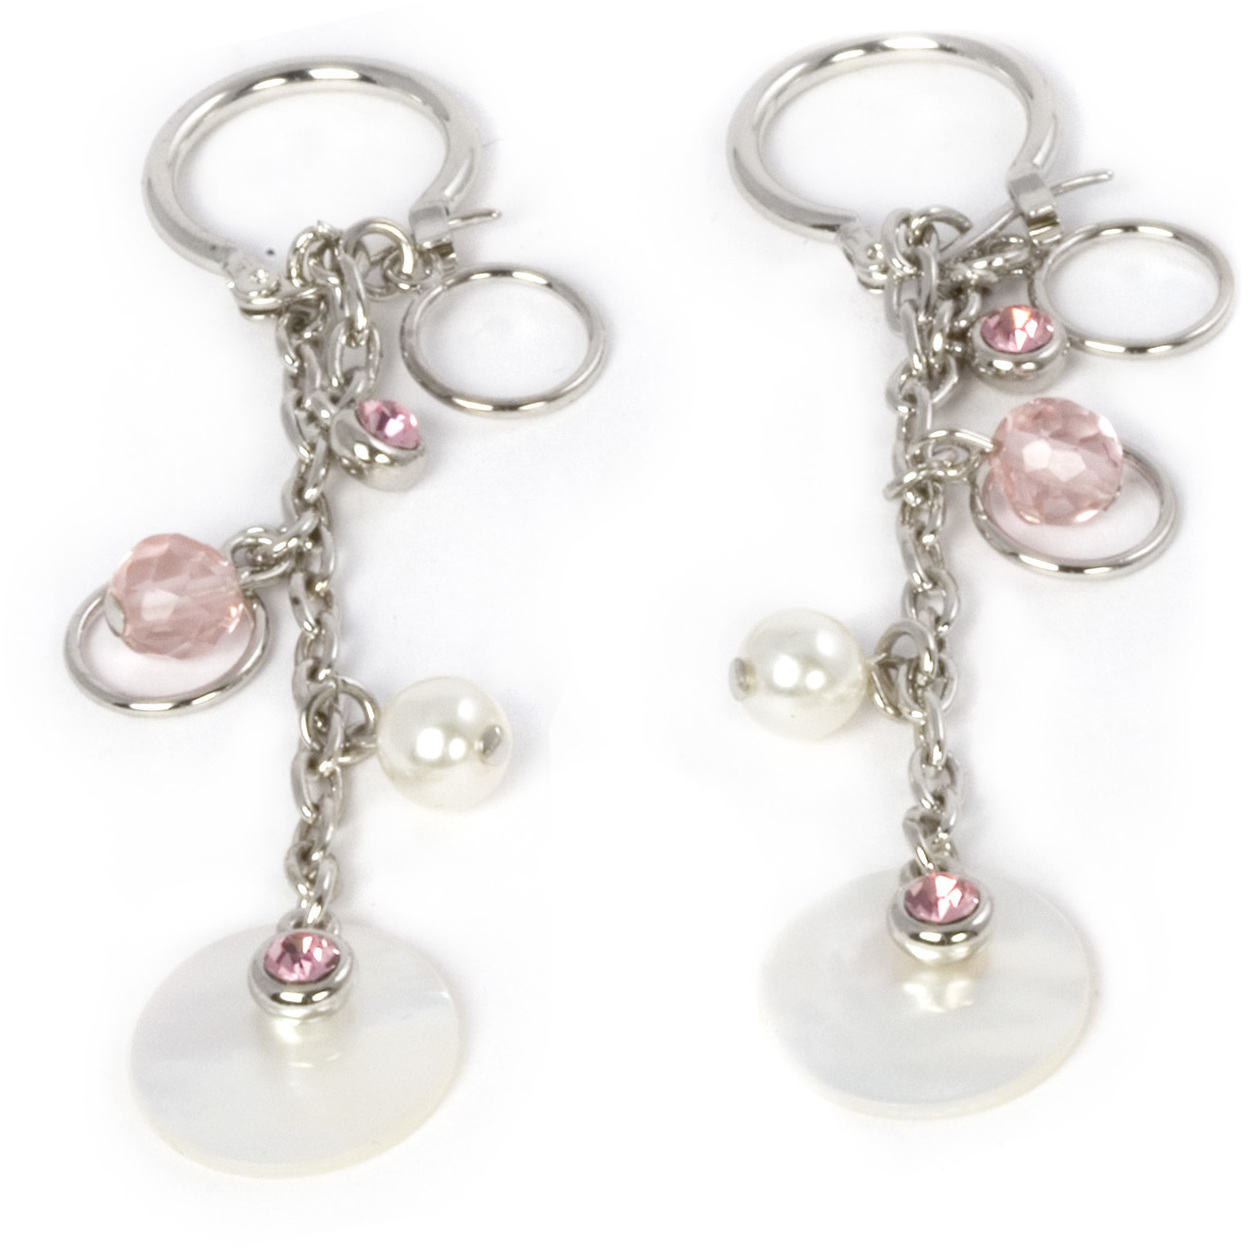 Pink Rose Earrings by Ava Collection - Pink Rose Earrings - w/Pearl Accents